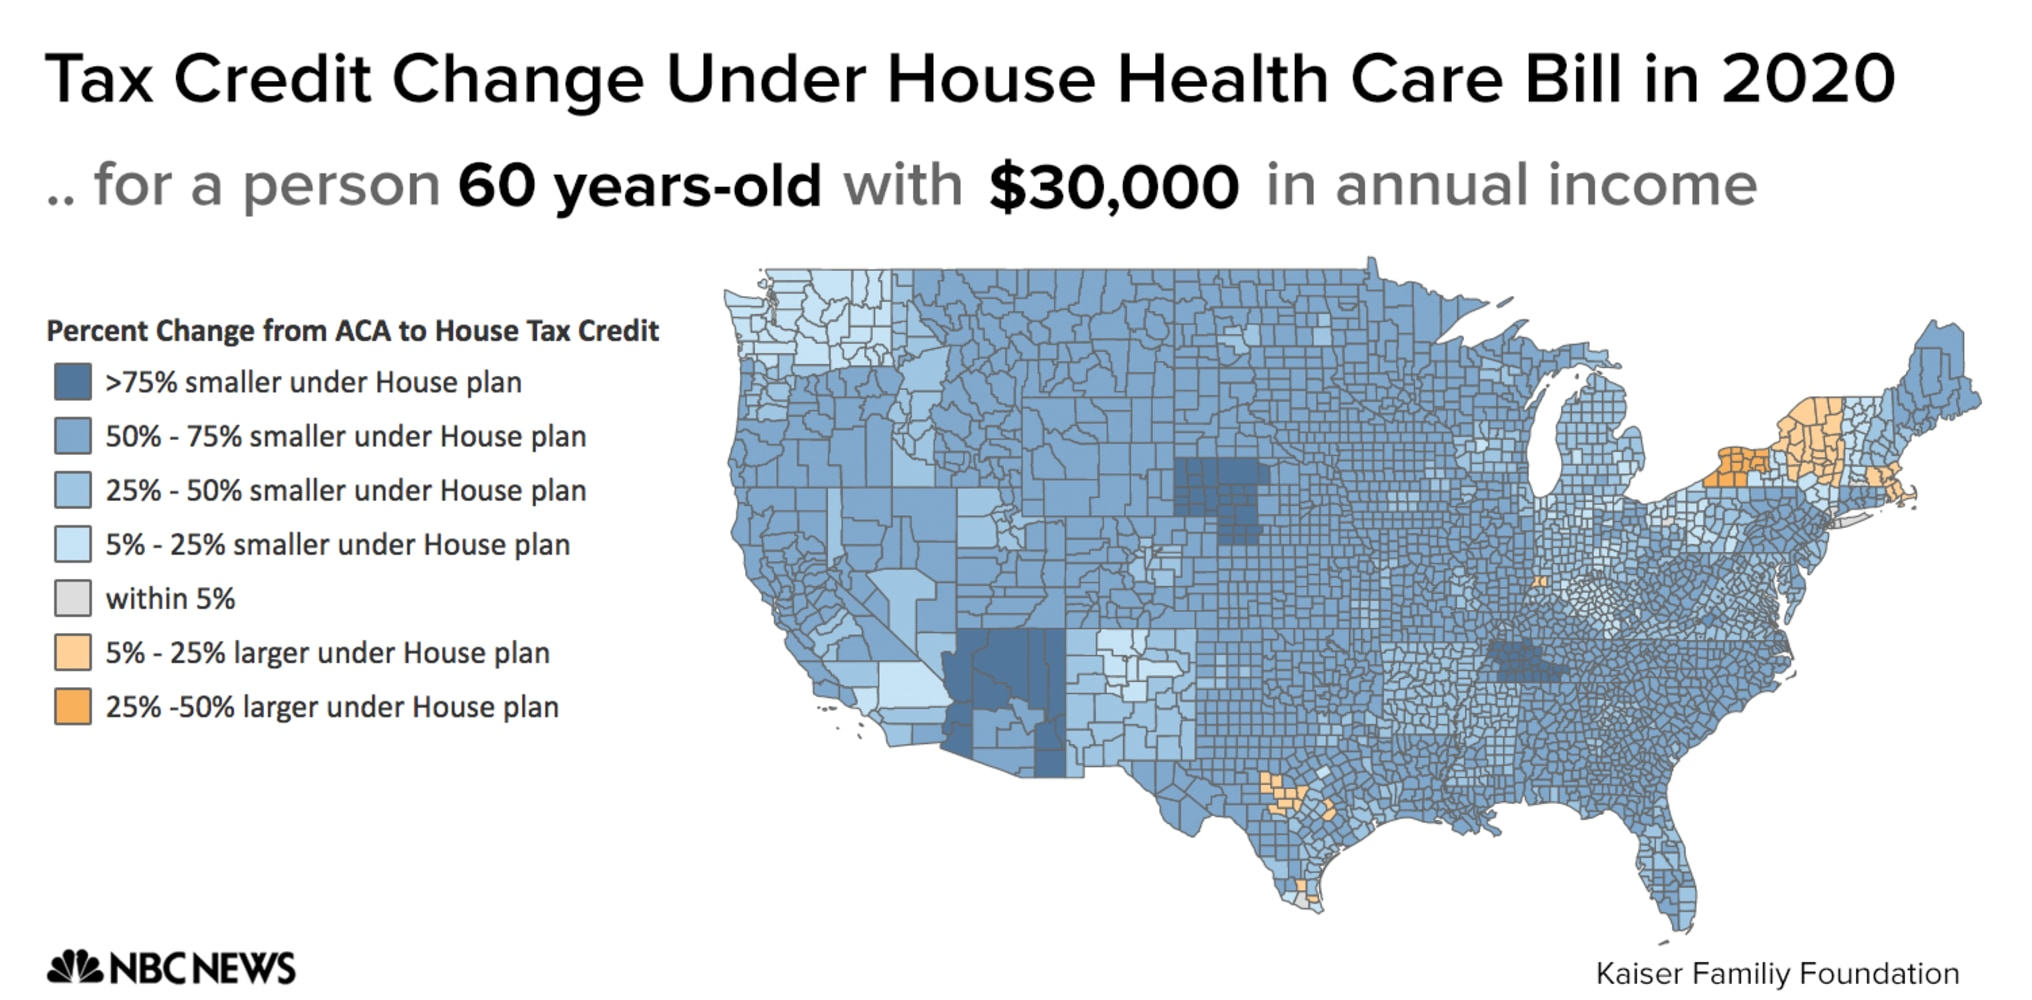 Geography Is Another Problem The House Gop Bill S Tax Credits Are The Same Everywhere But Premium Costs Vary Wildly Depending On Where You Live